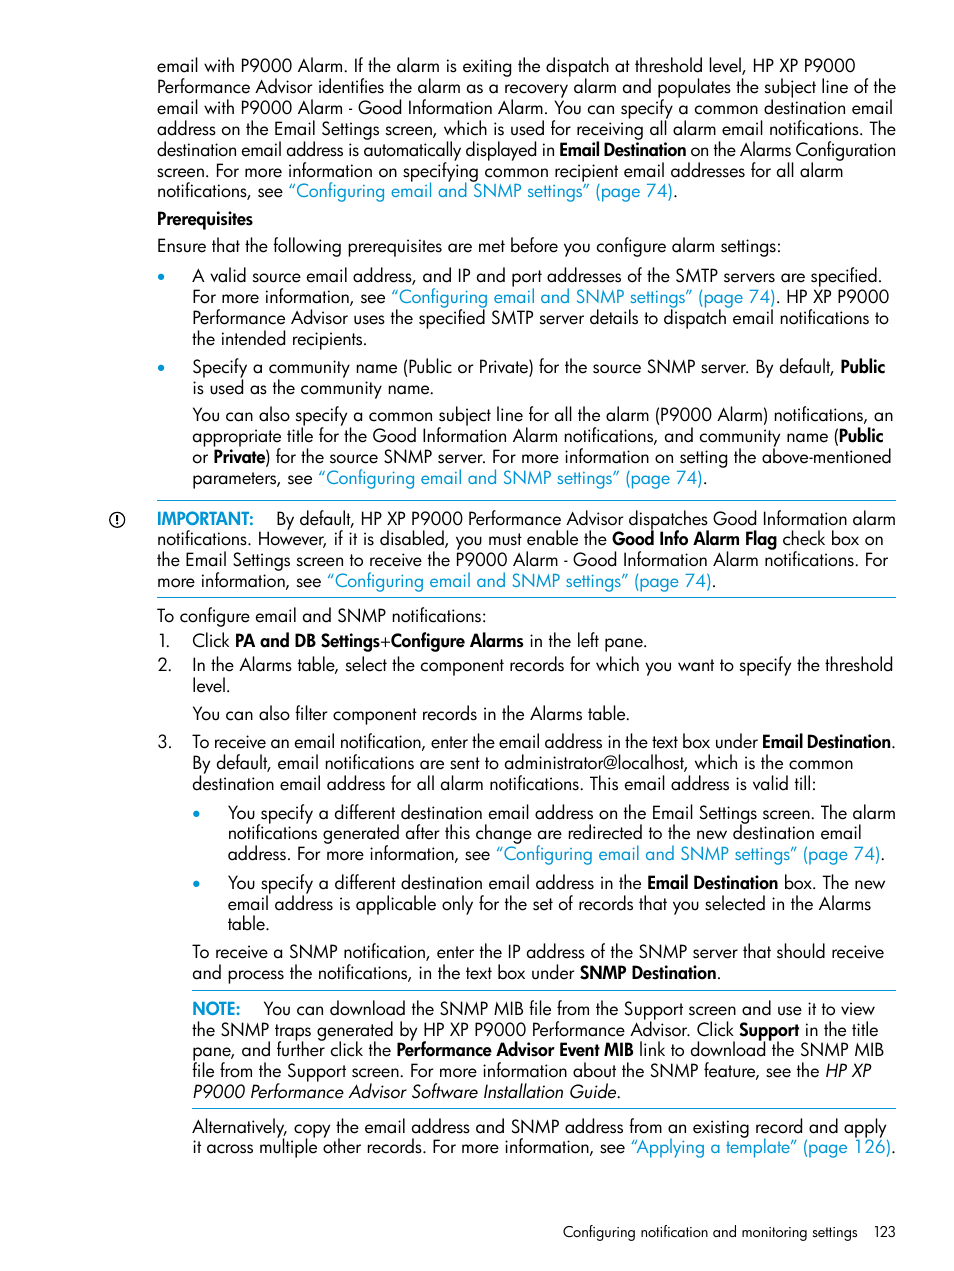 HP XP P9000 Performance Advisor Software User Manual | Page 123 ...